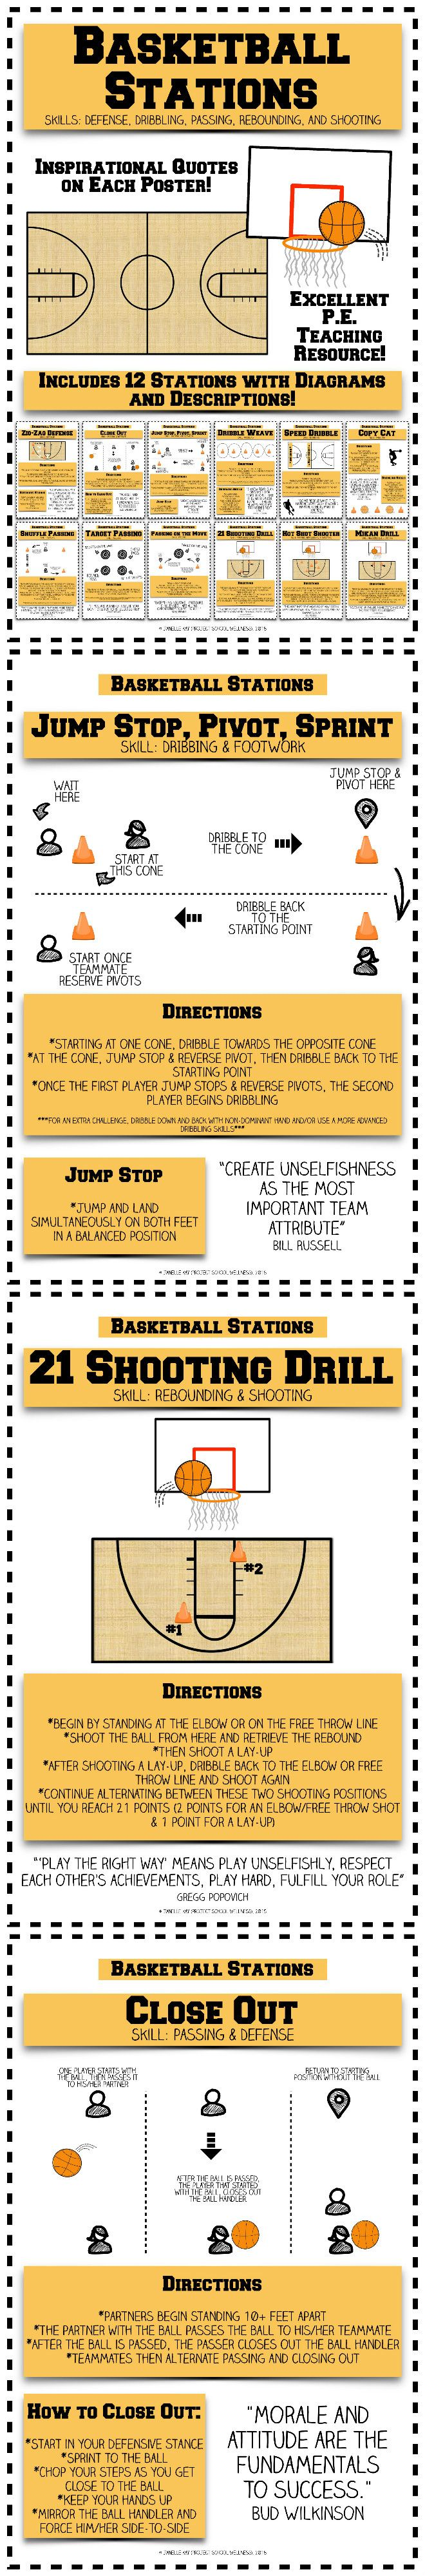 Basketball Stations - PE Stations - PE Resources